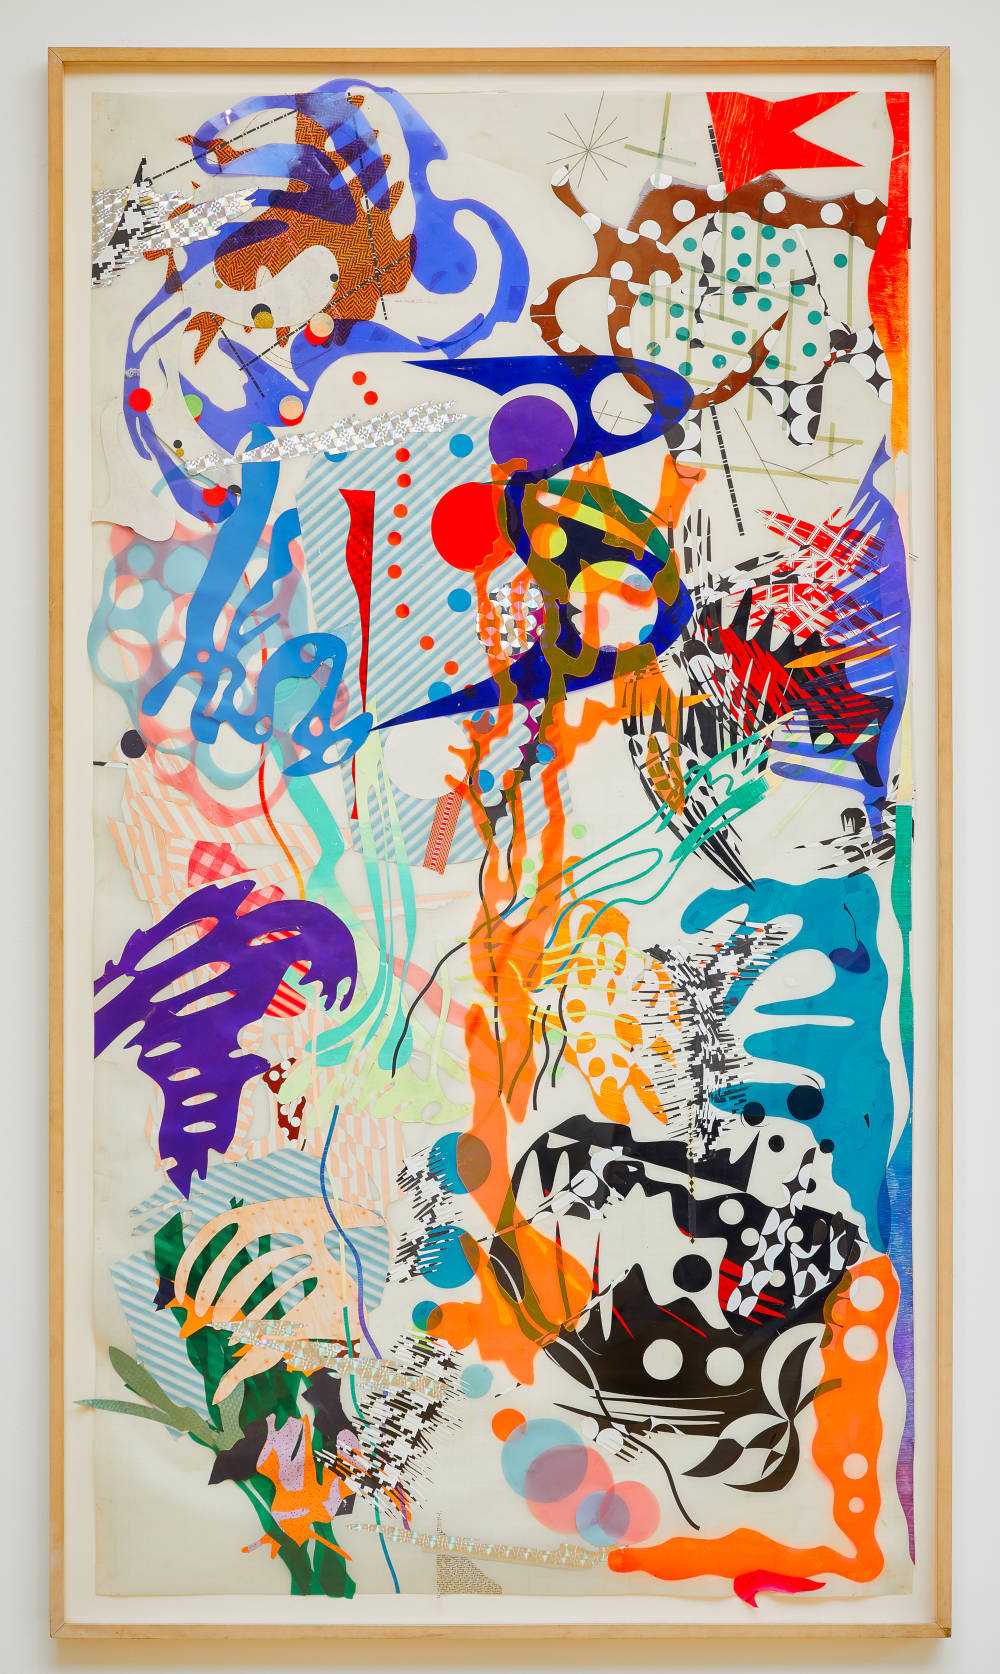 Judy Pfaff, Untitled (shower curtain), c. 1979. Mixed adhesive plastics, paint and paper, 80 1/2 x 44 1/8 in., 204.5 x 112.1 cm